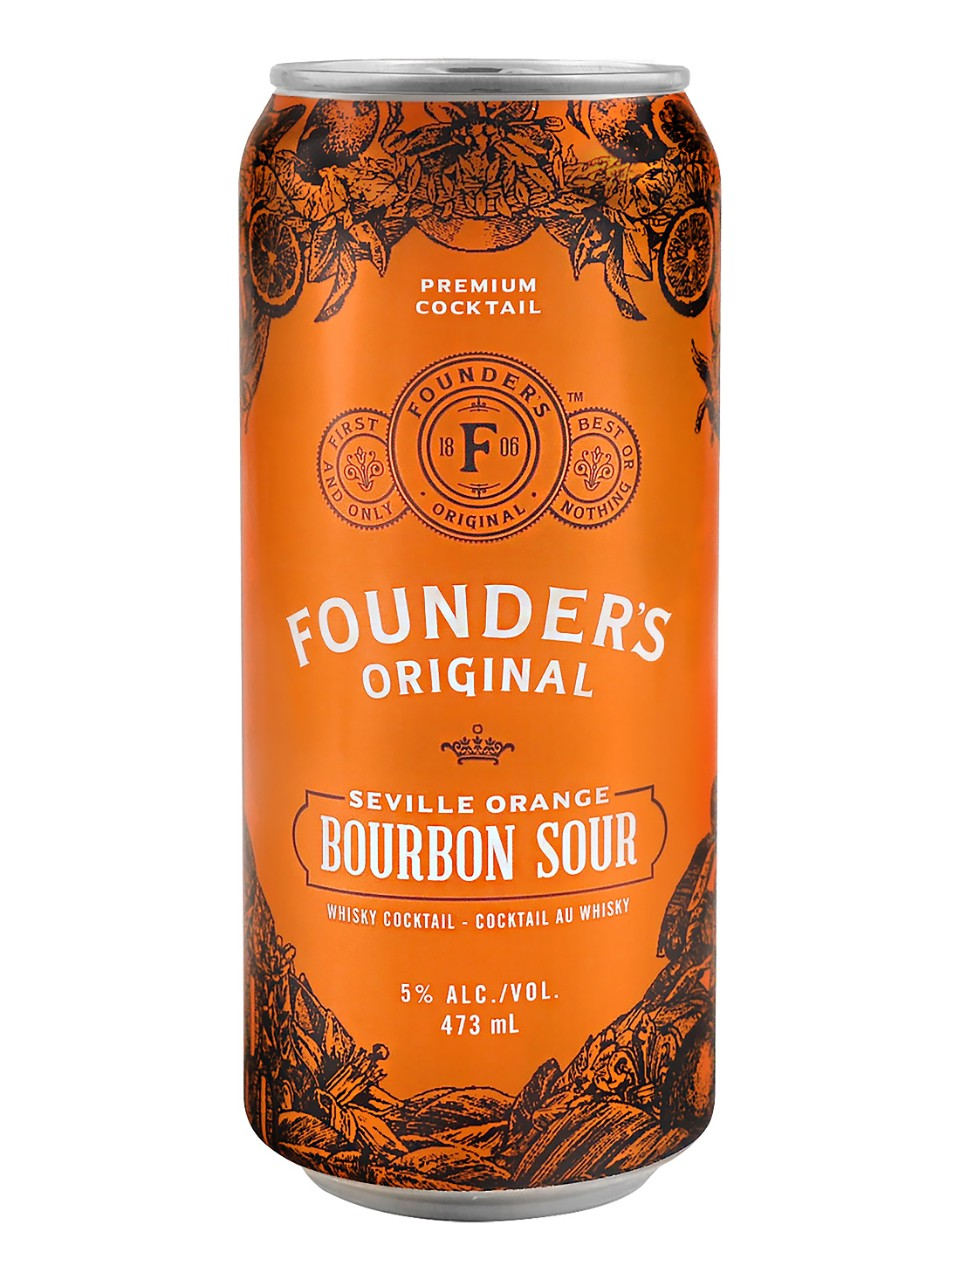 Founder's Original Bourbon Sour from LCBO